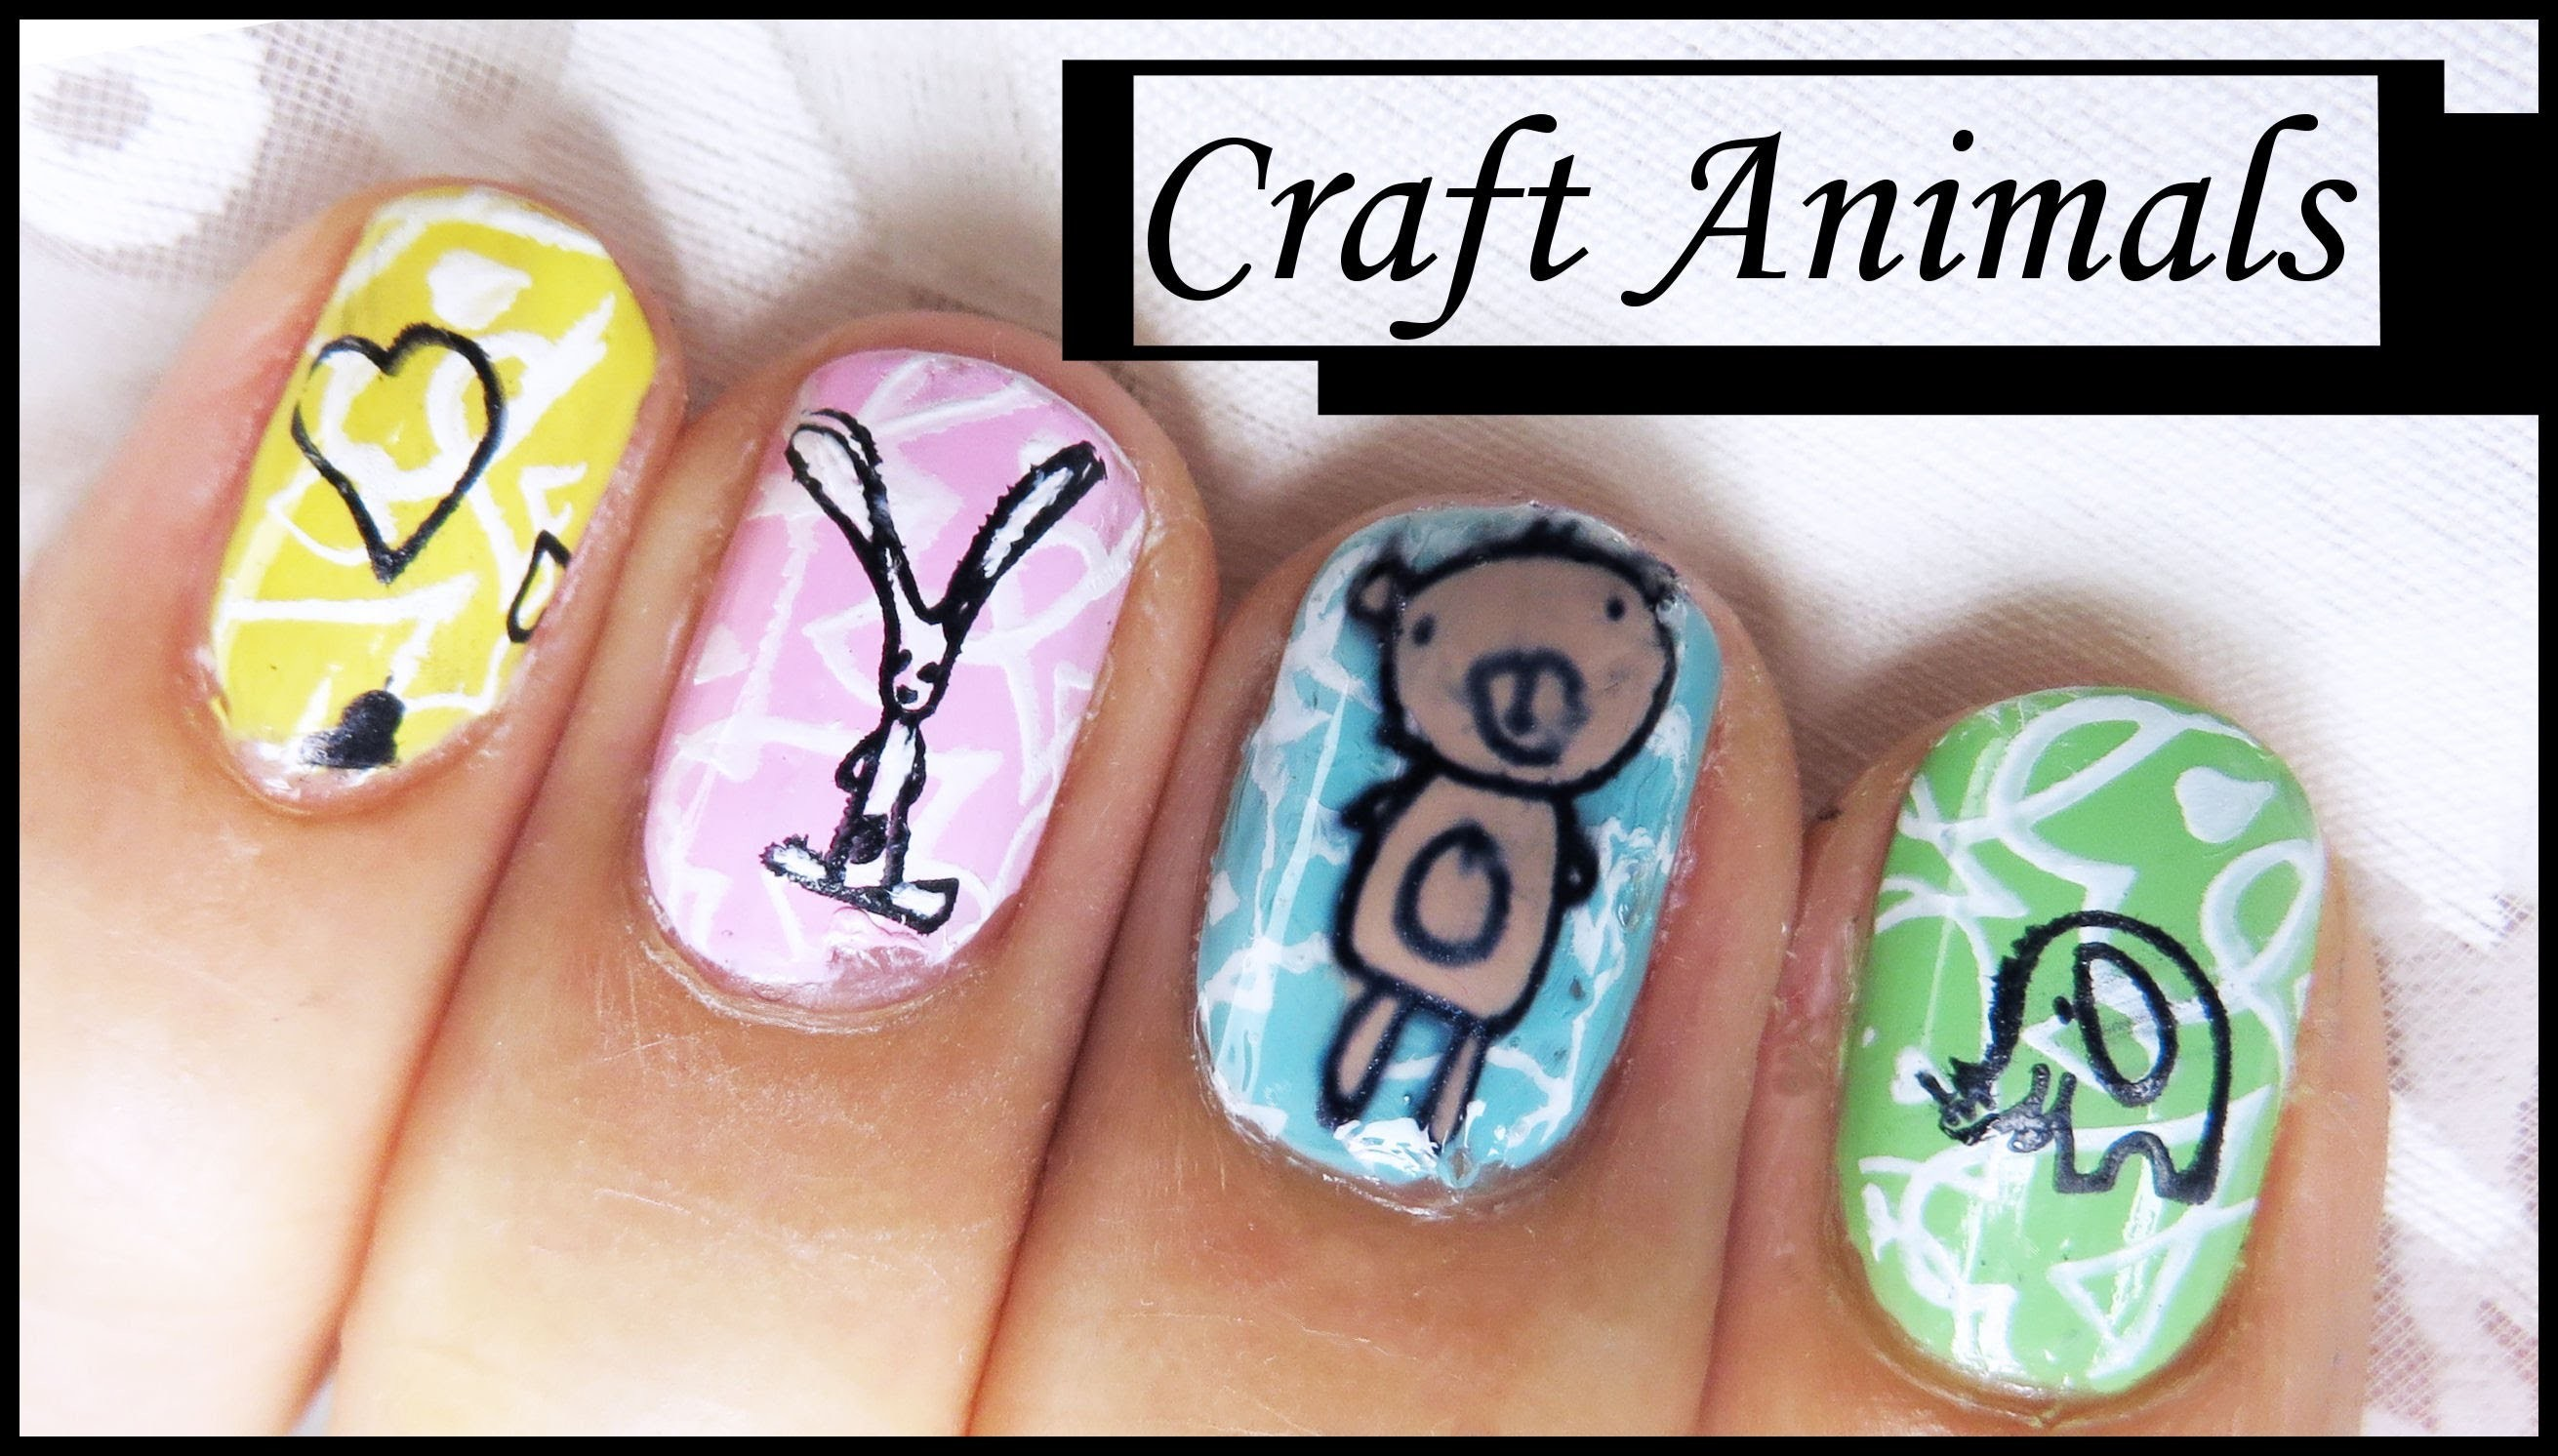 CRAFT ANIMAL STAMPING NAIL ART DESIGN TUTORIAL FOR SHORT NAILS BEGINNERS EASY SIMPLE DIY HOME MADE